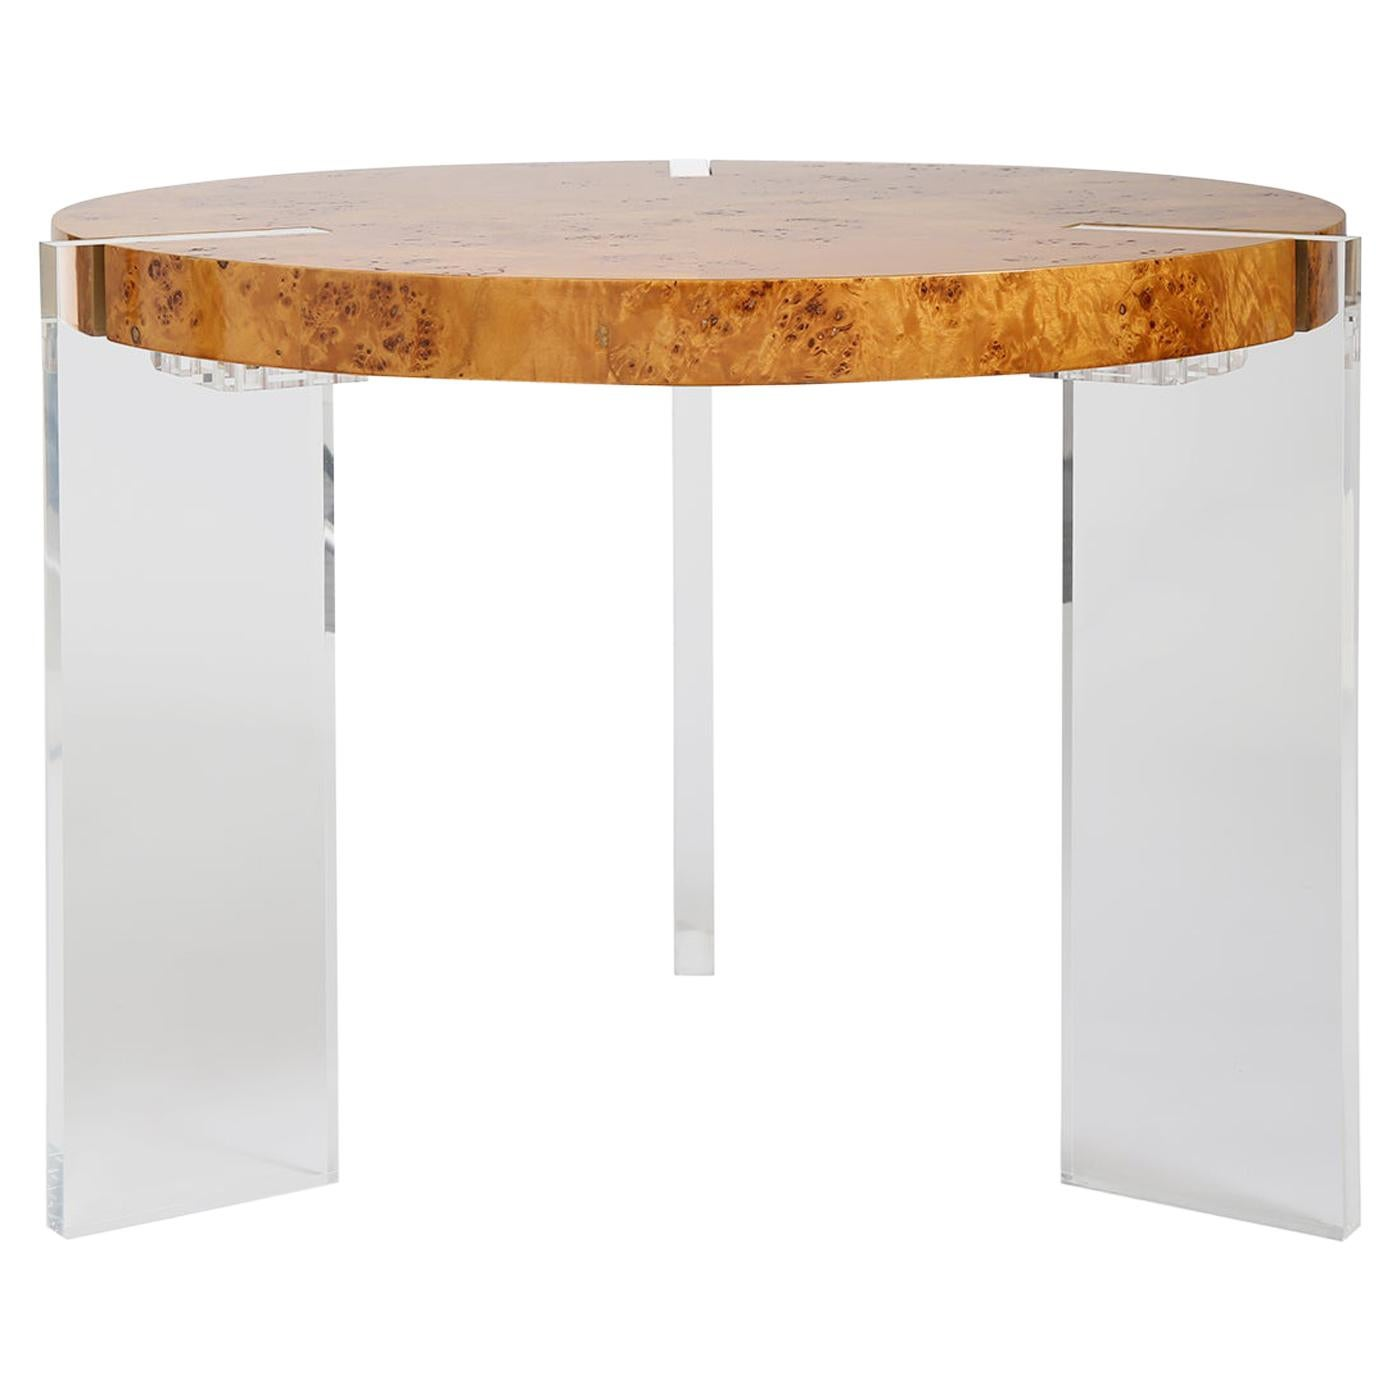 Bond Burled Wood and Lucite Occasional Table